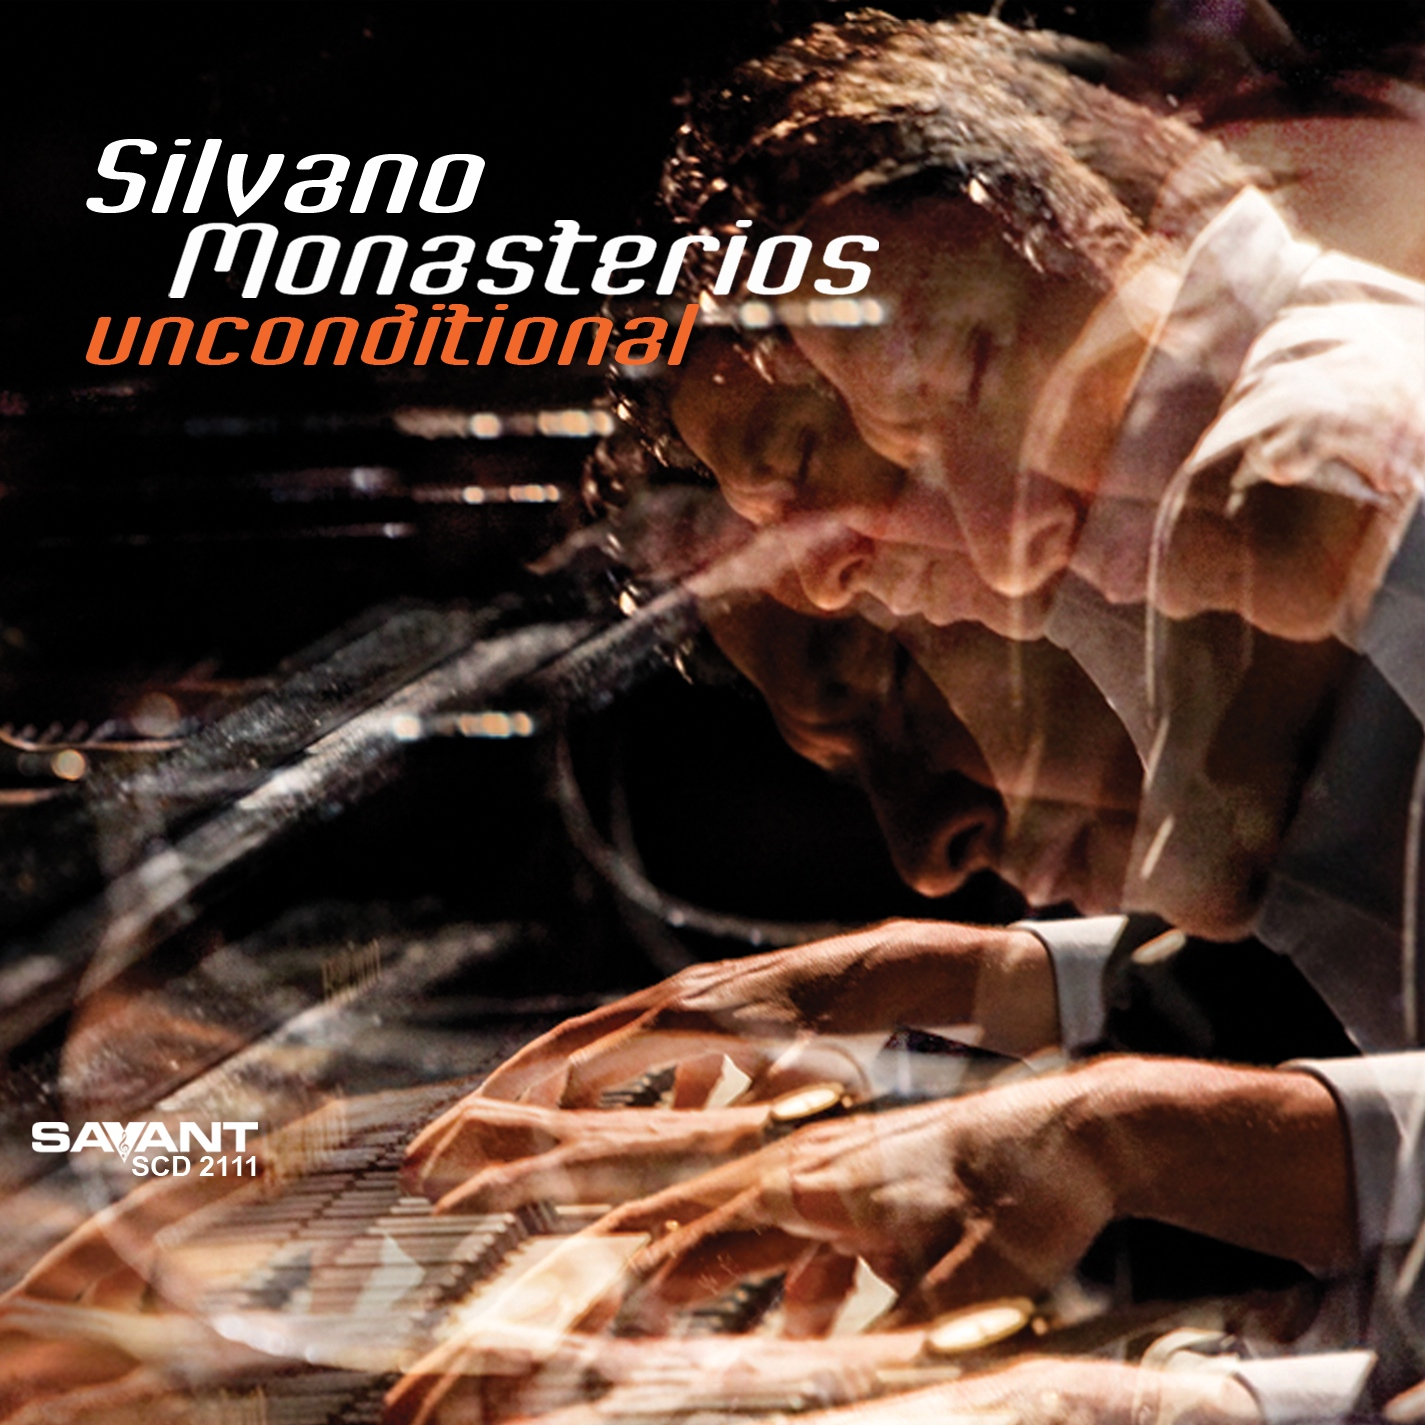 """In Monasterios' music, fun and beauty unfold with a purpose – and jazz becomes an inch wider and deeper.""  Fernando Gonzalez, The International Review of Music.     ""A pianist of extraordinairy fluidity...""  Jazztimes.com   ""A compelling musical statement…""  Greg Simmons, allaboutjazz.com   ""Modern and insightful depth that is both uplifting and contemplative…""  The Latin Jazz Corner   ""The scope of the music defies easy categorization...a stellar collection.""  Blogcritics.org   [CLICK for iTunes Download]"